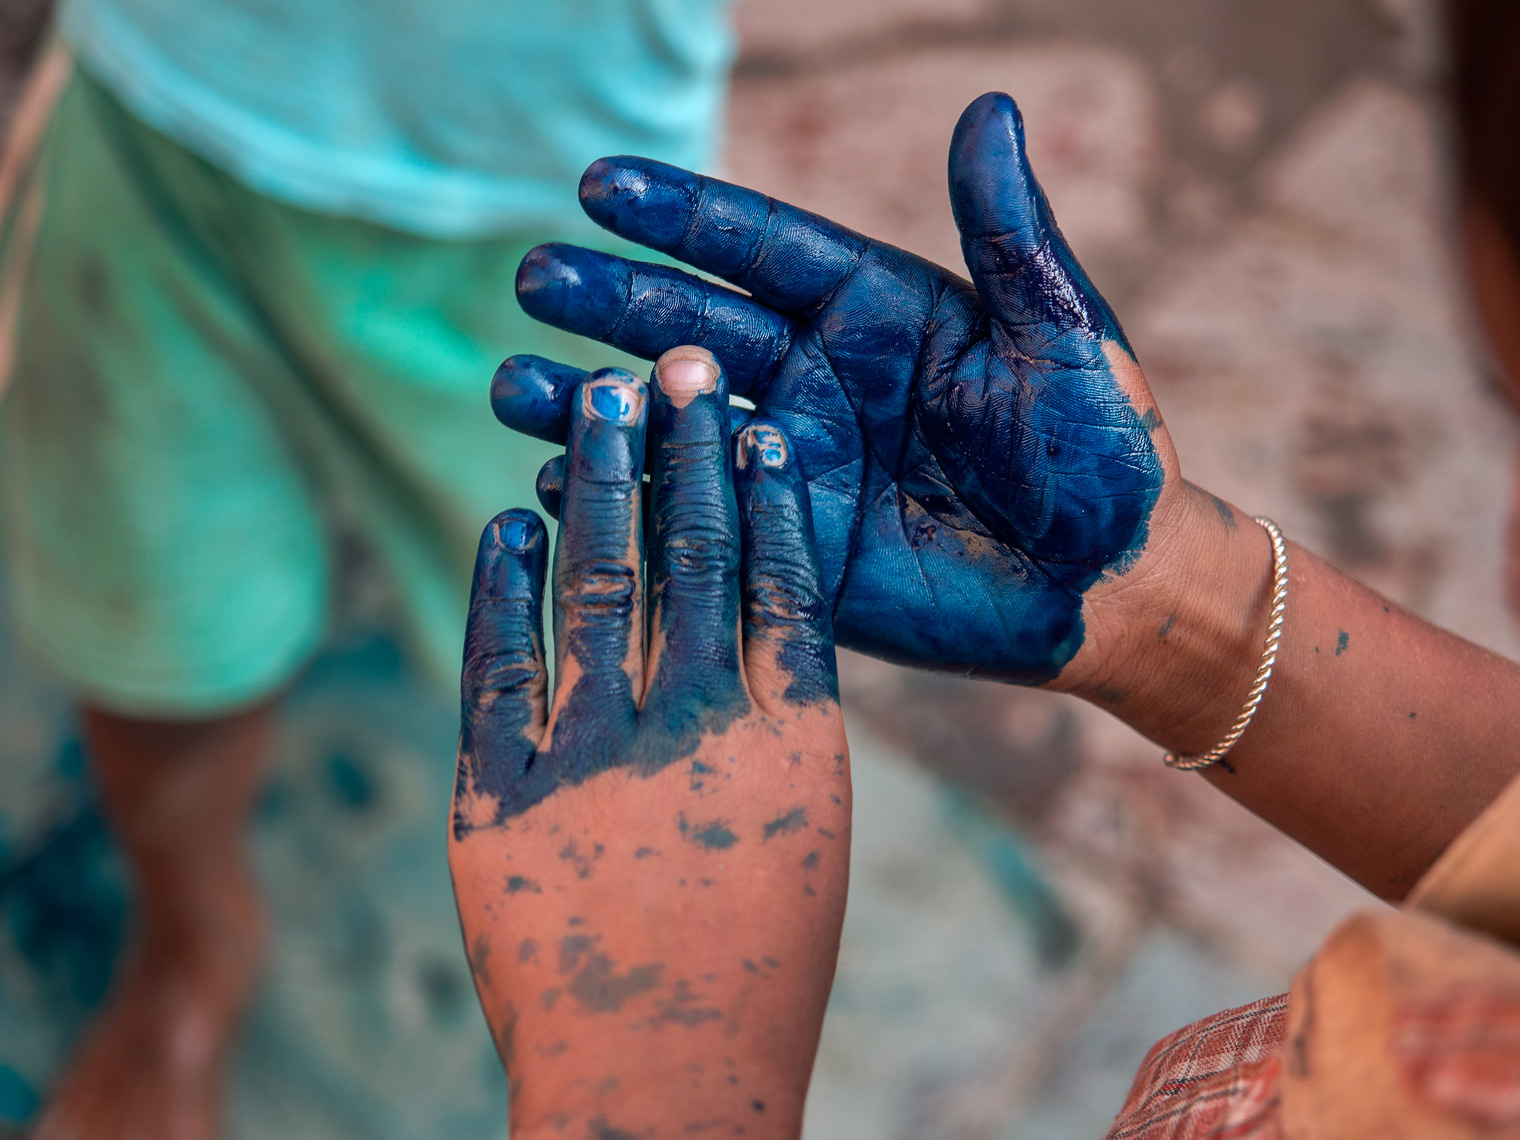 Kids playing with dye